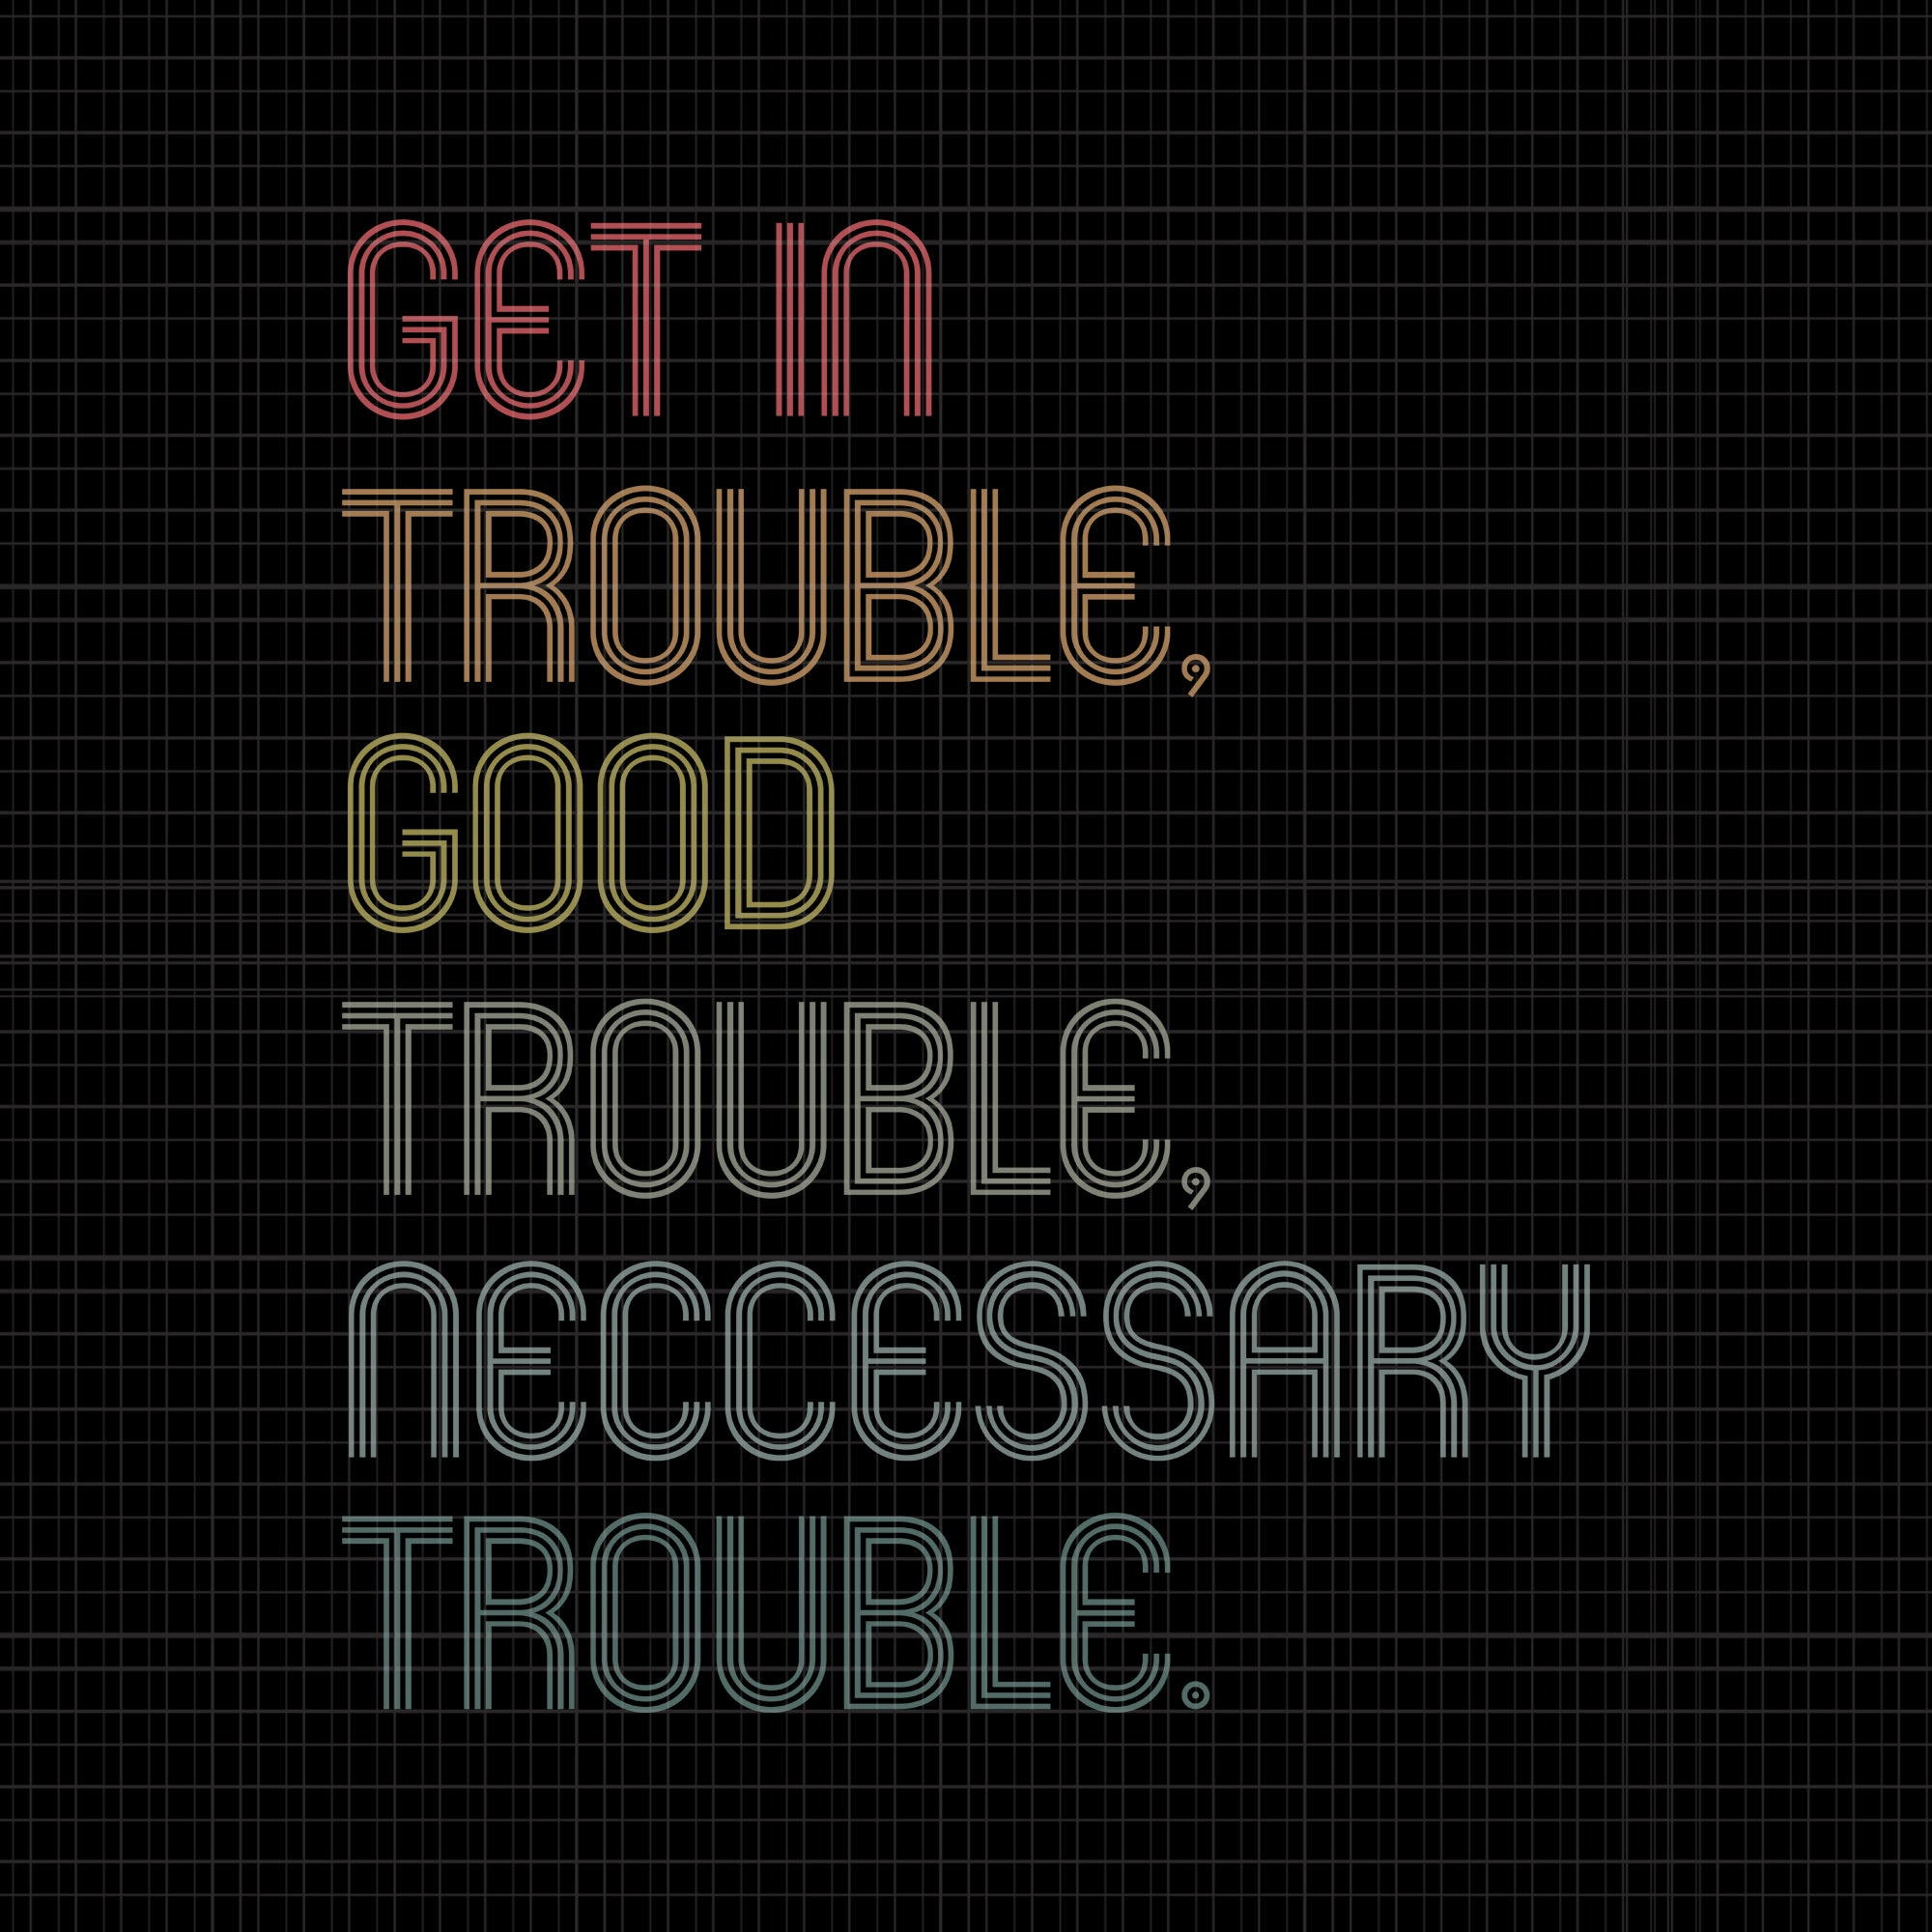 Good trouble svg, good trouble, get in trouble svg, get in trouble, get in good necessary trouble social justice svg, get in good necessary trouble social justice